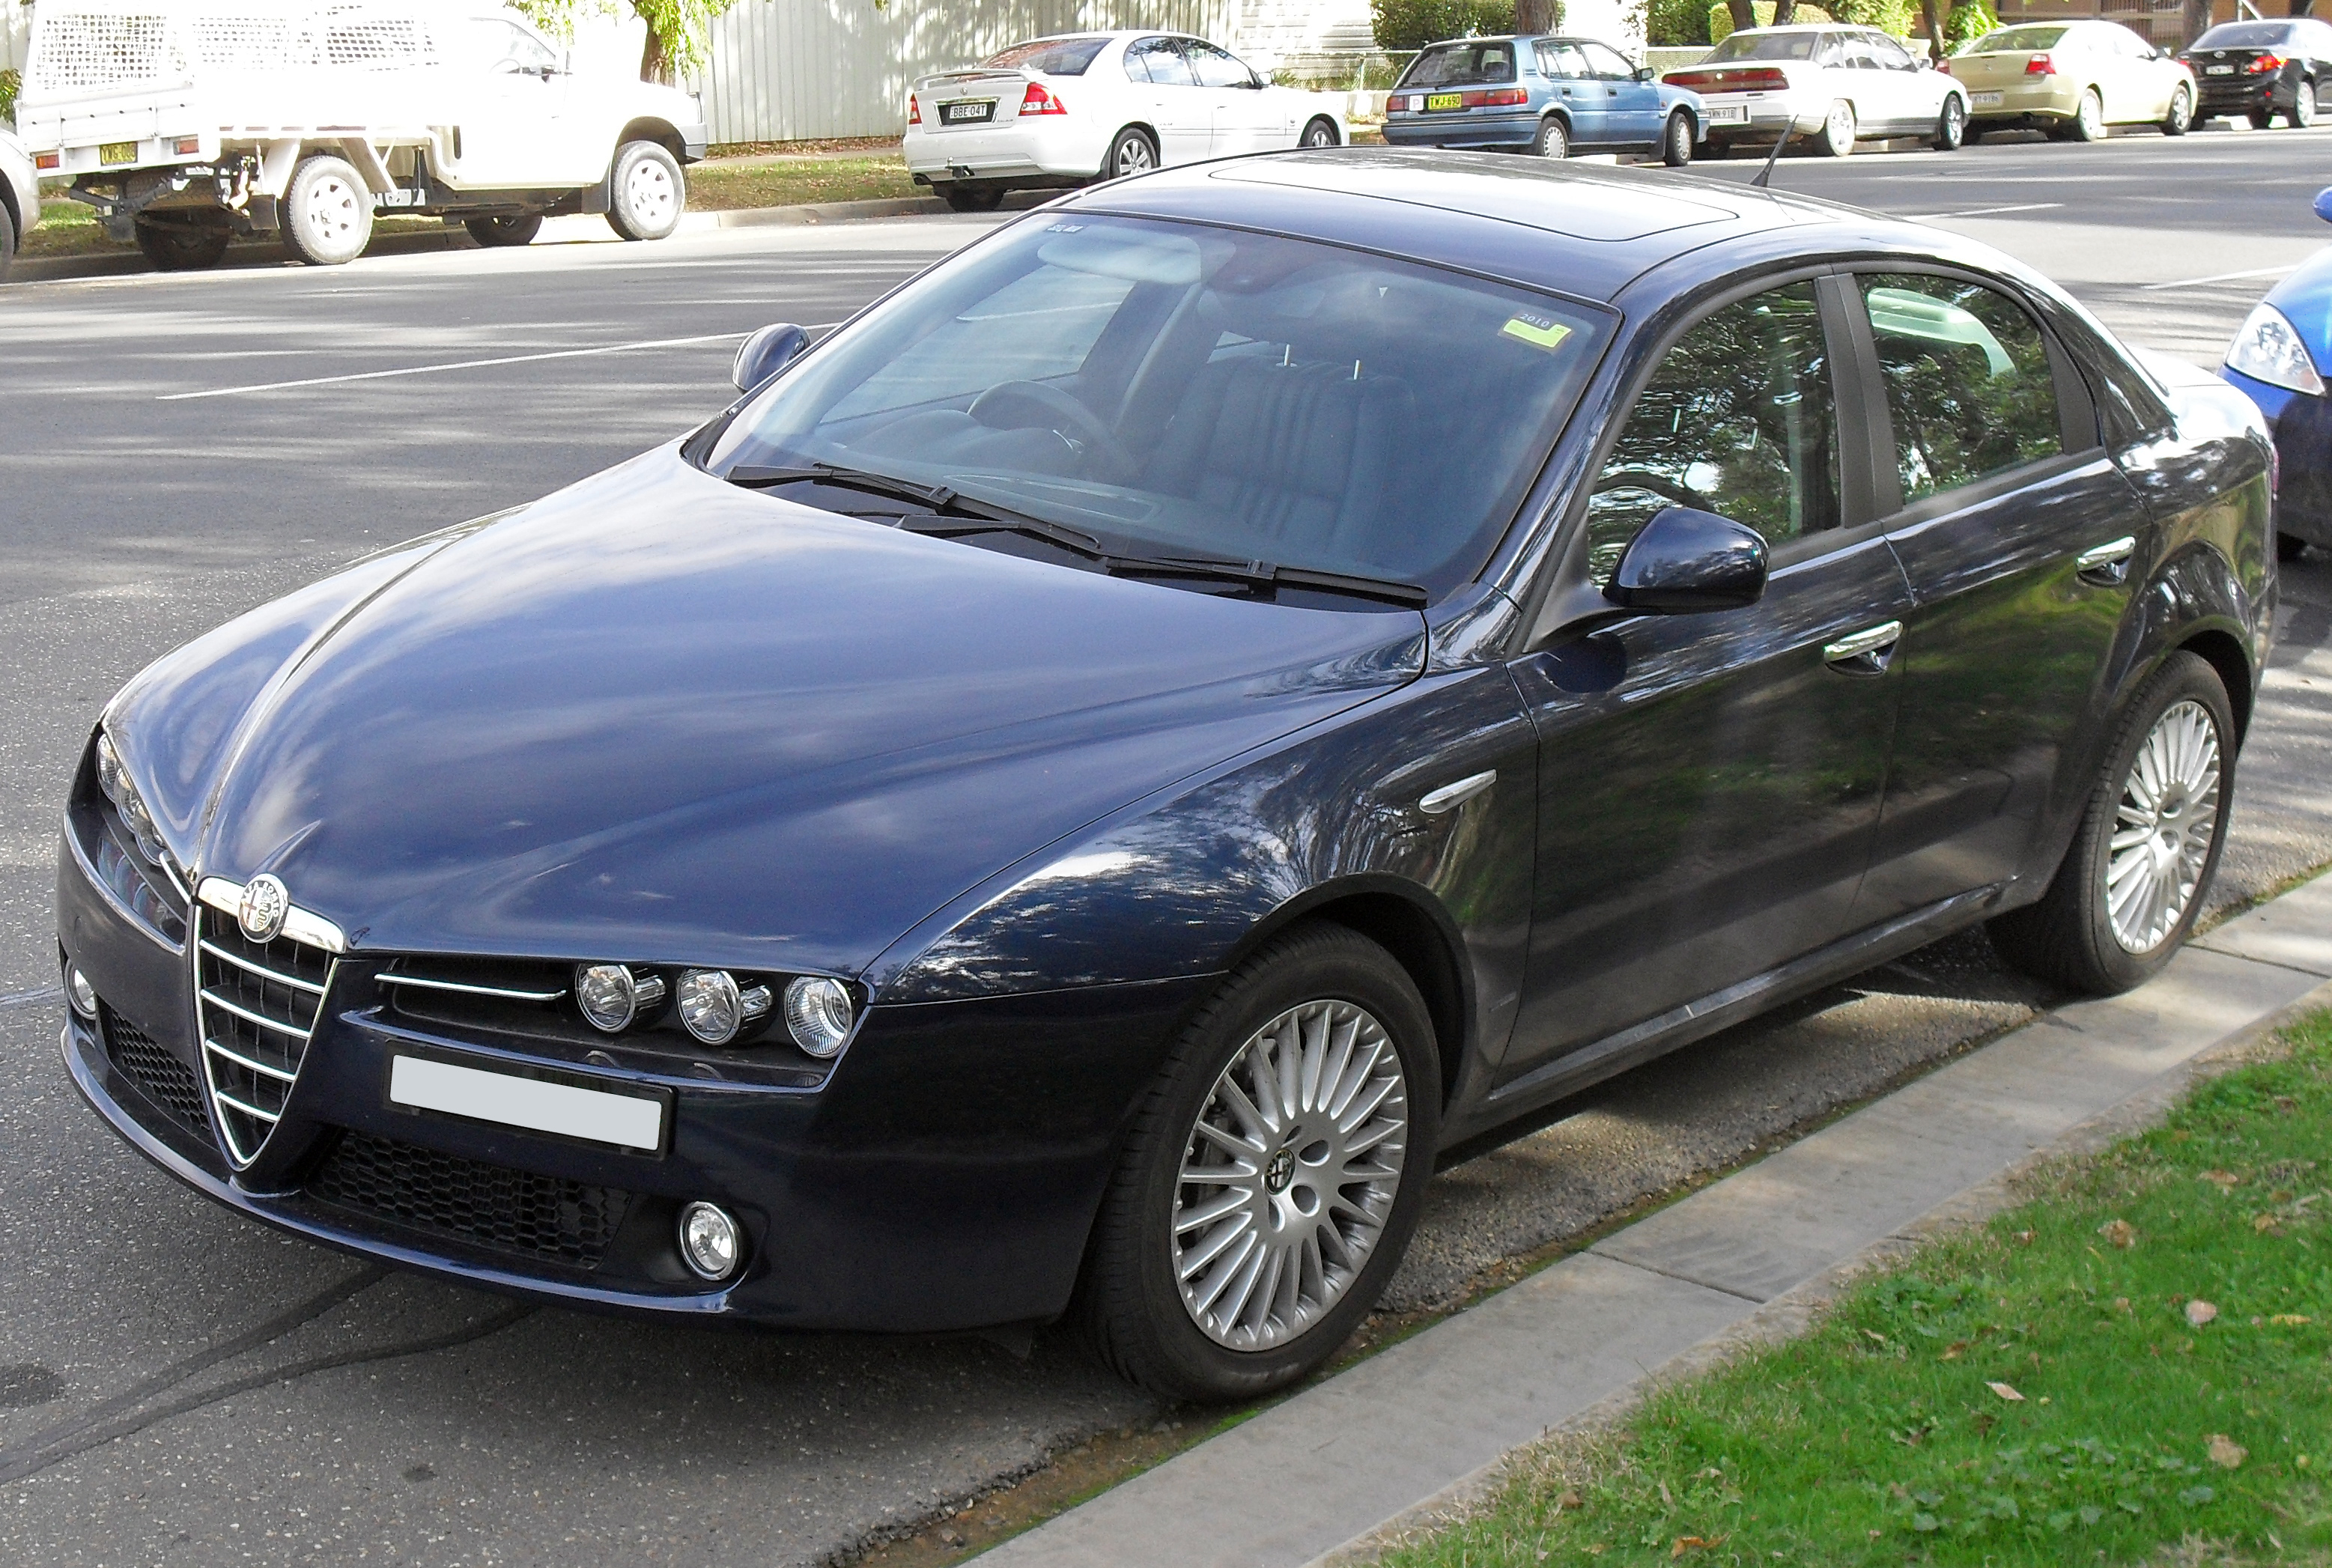 2009 Alfa Romeo 159 s Informations Articles BestCarMag